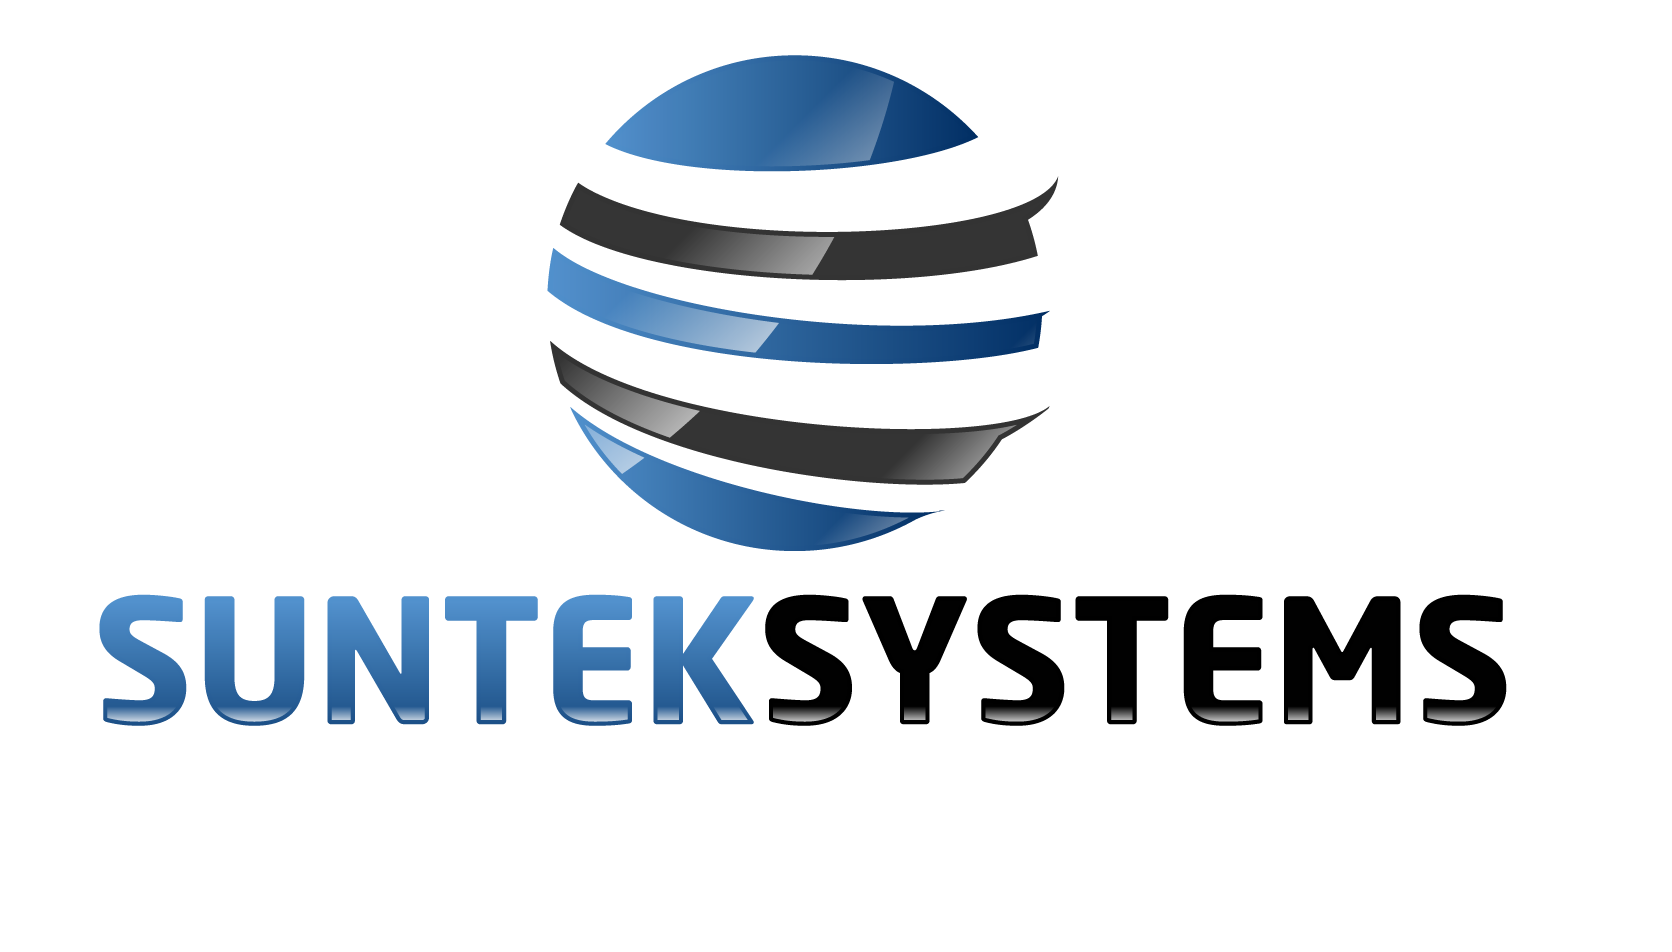 Suntek Systems (Pleasanton)